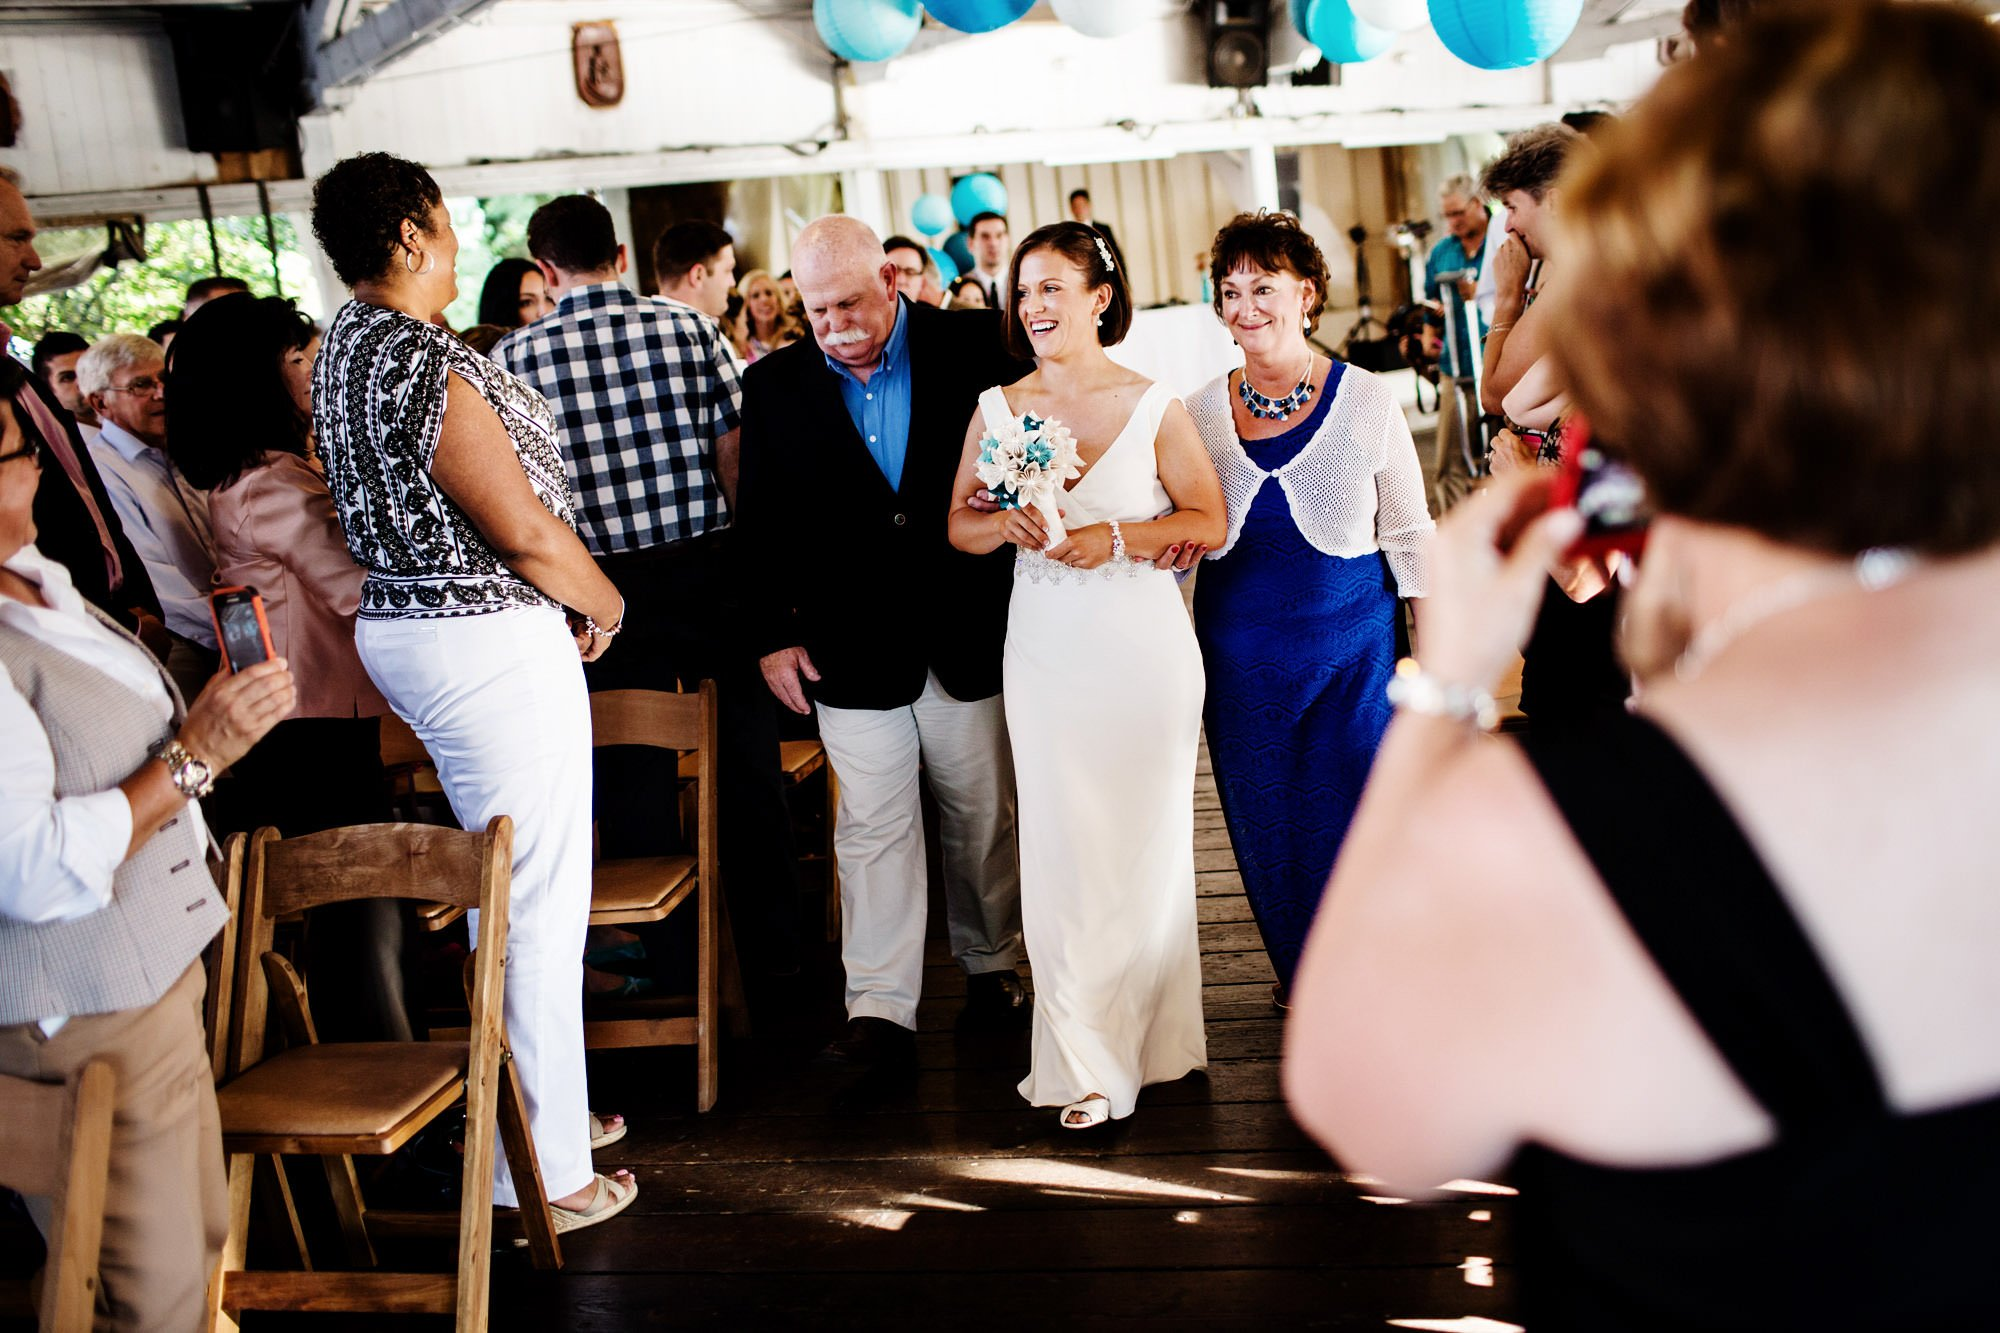 The bride walks down the aisle in the pavilion at Glen Echo Park.